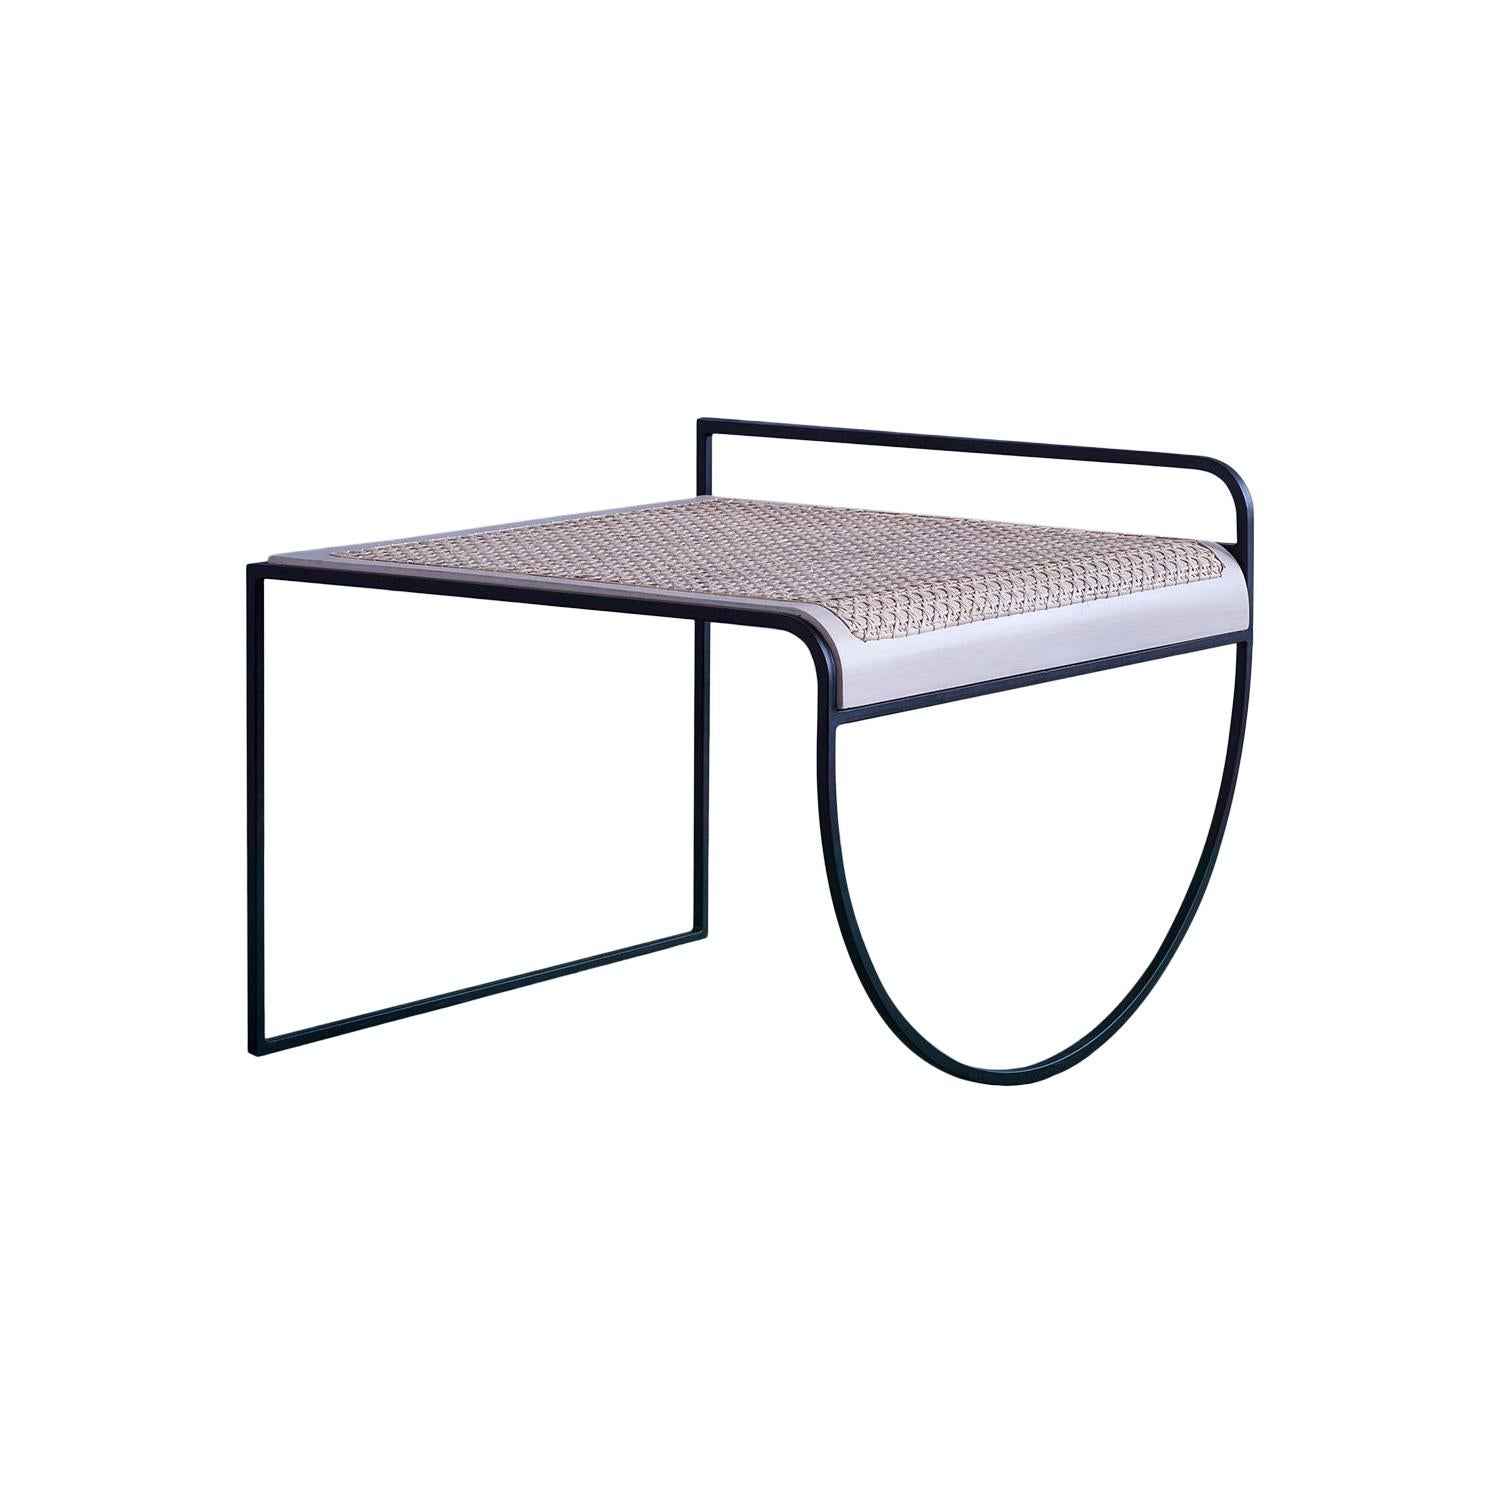 SW Side Table in Hand-Woven Cane and Steel by Soft-Geometry